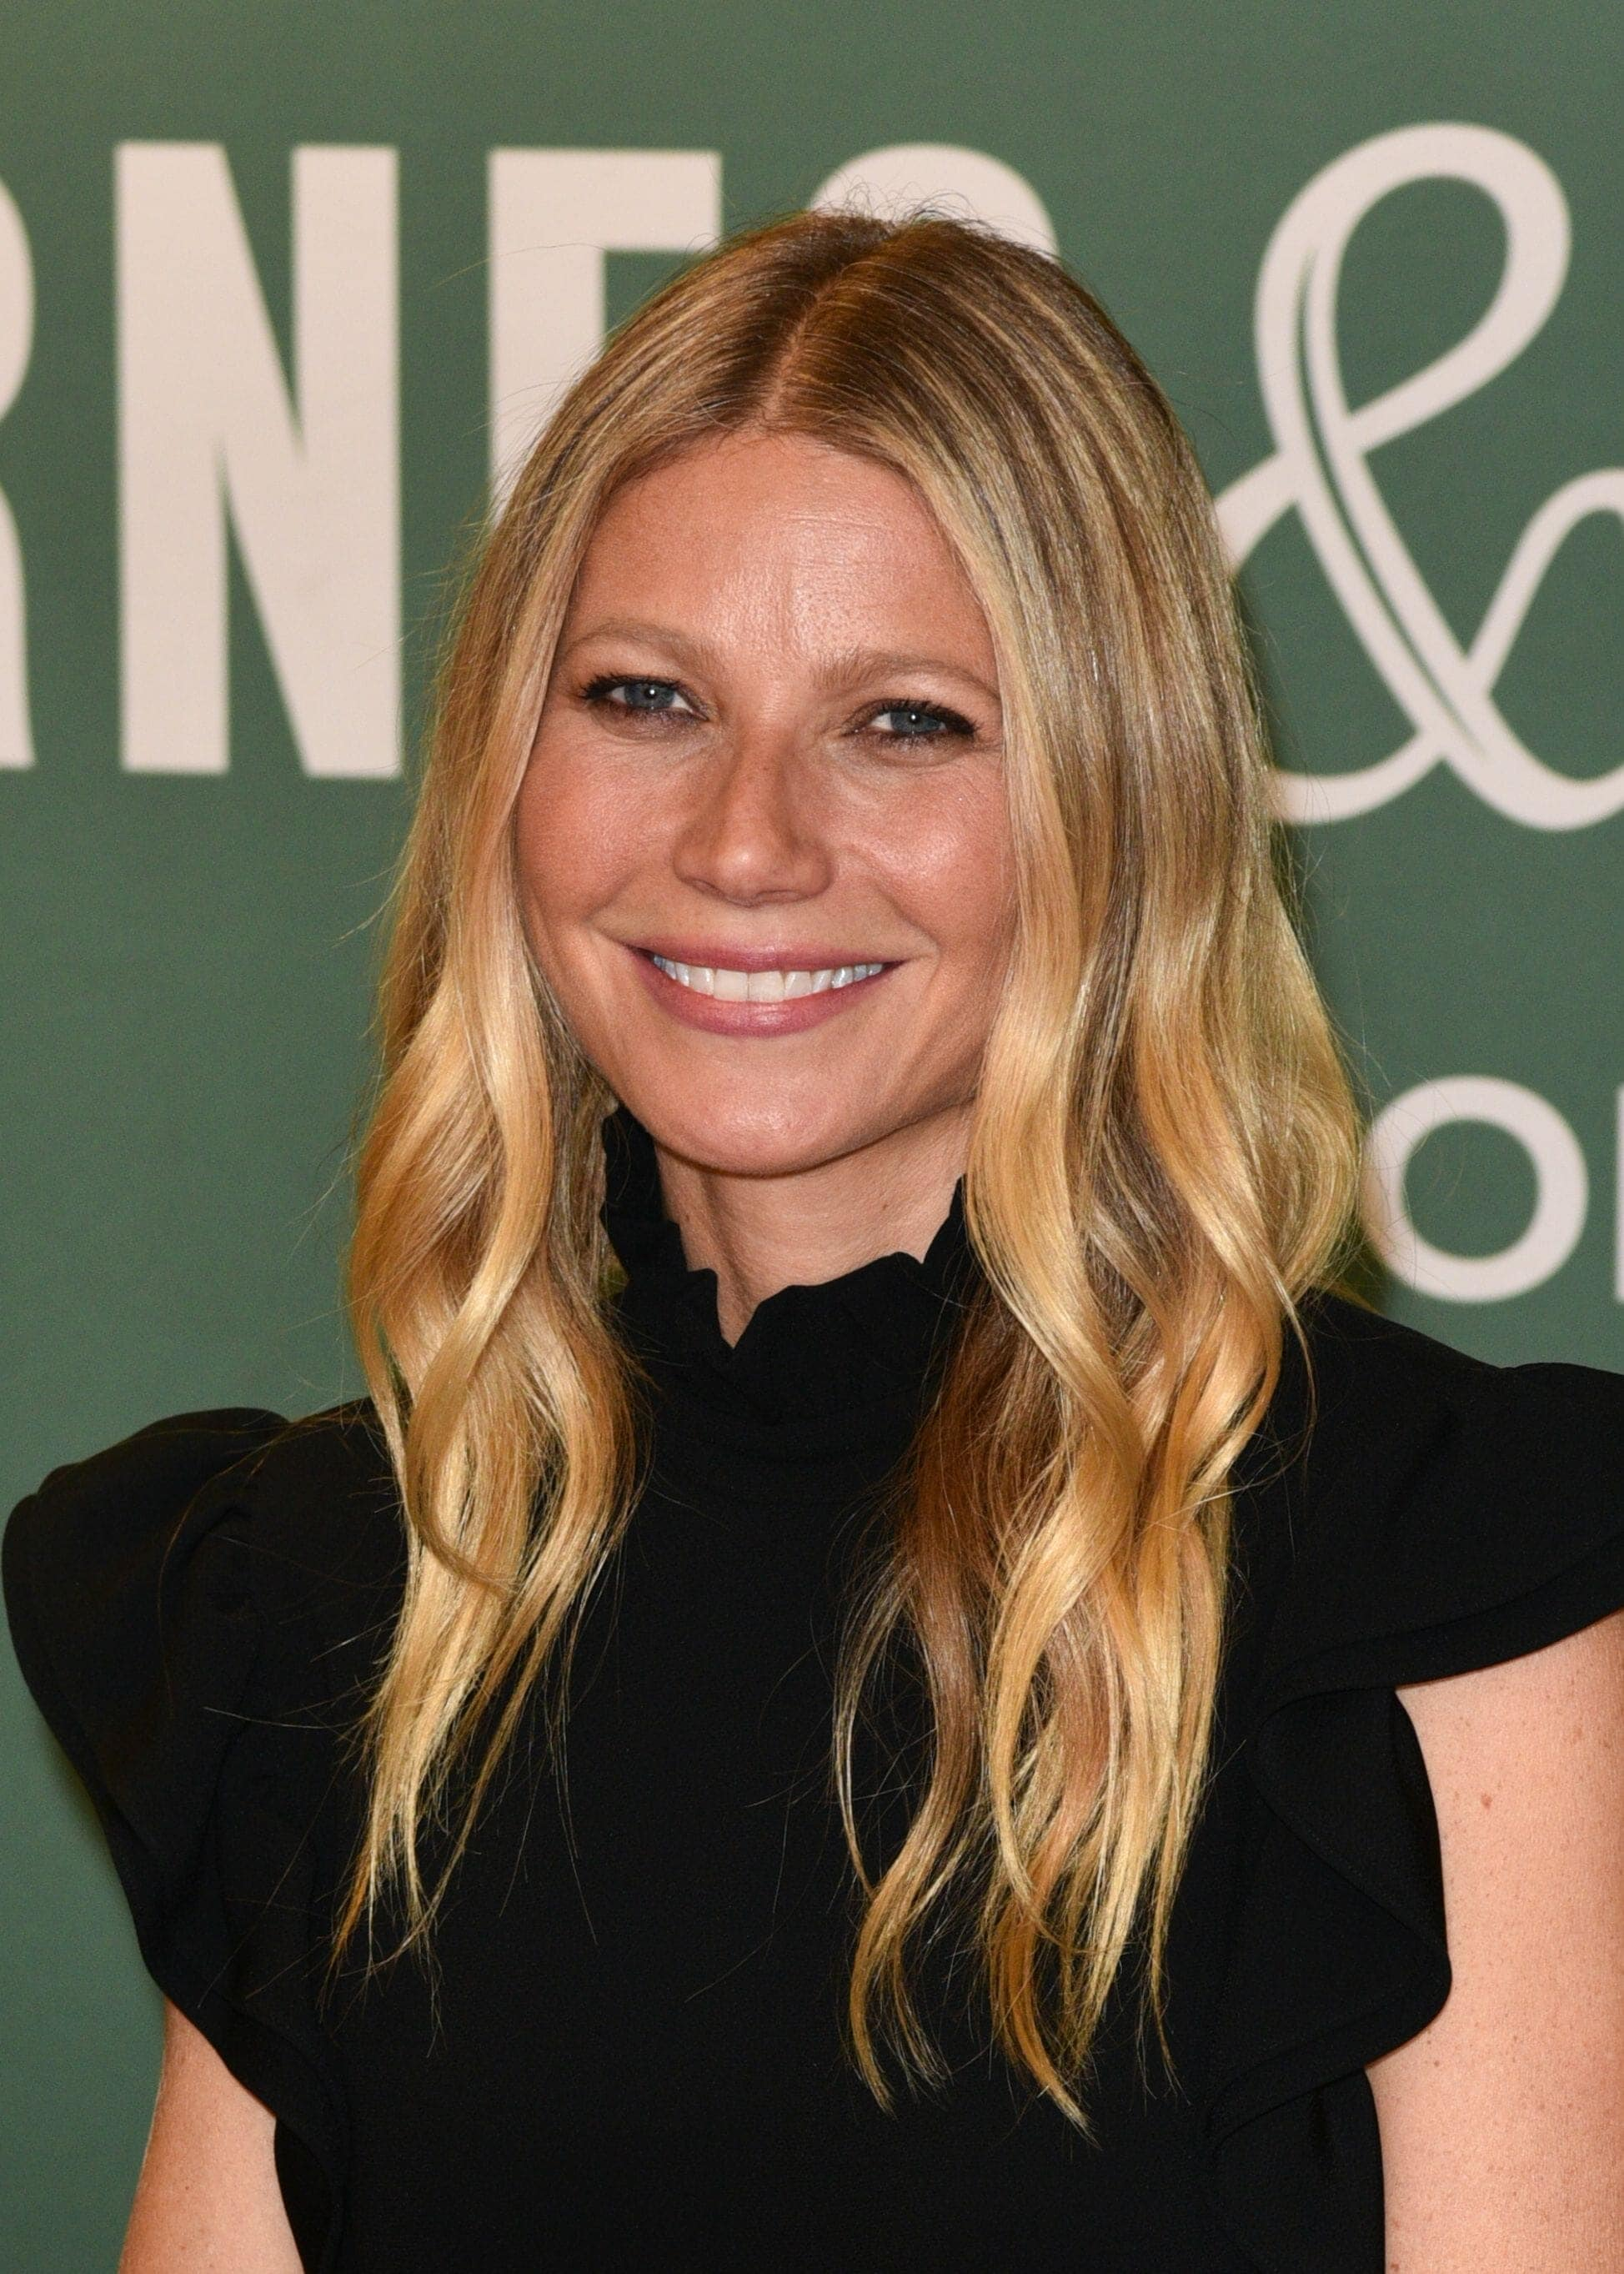 Gwyneth Paltrow with curly hair in a black dress hairstyles for very fine hair